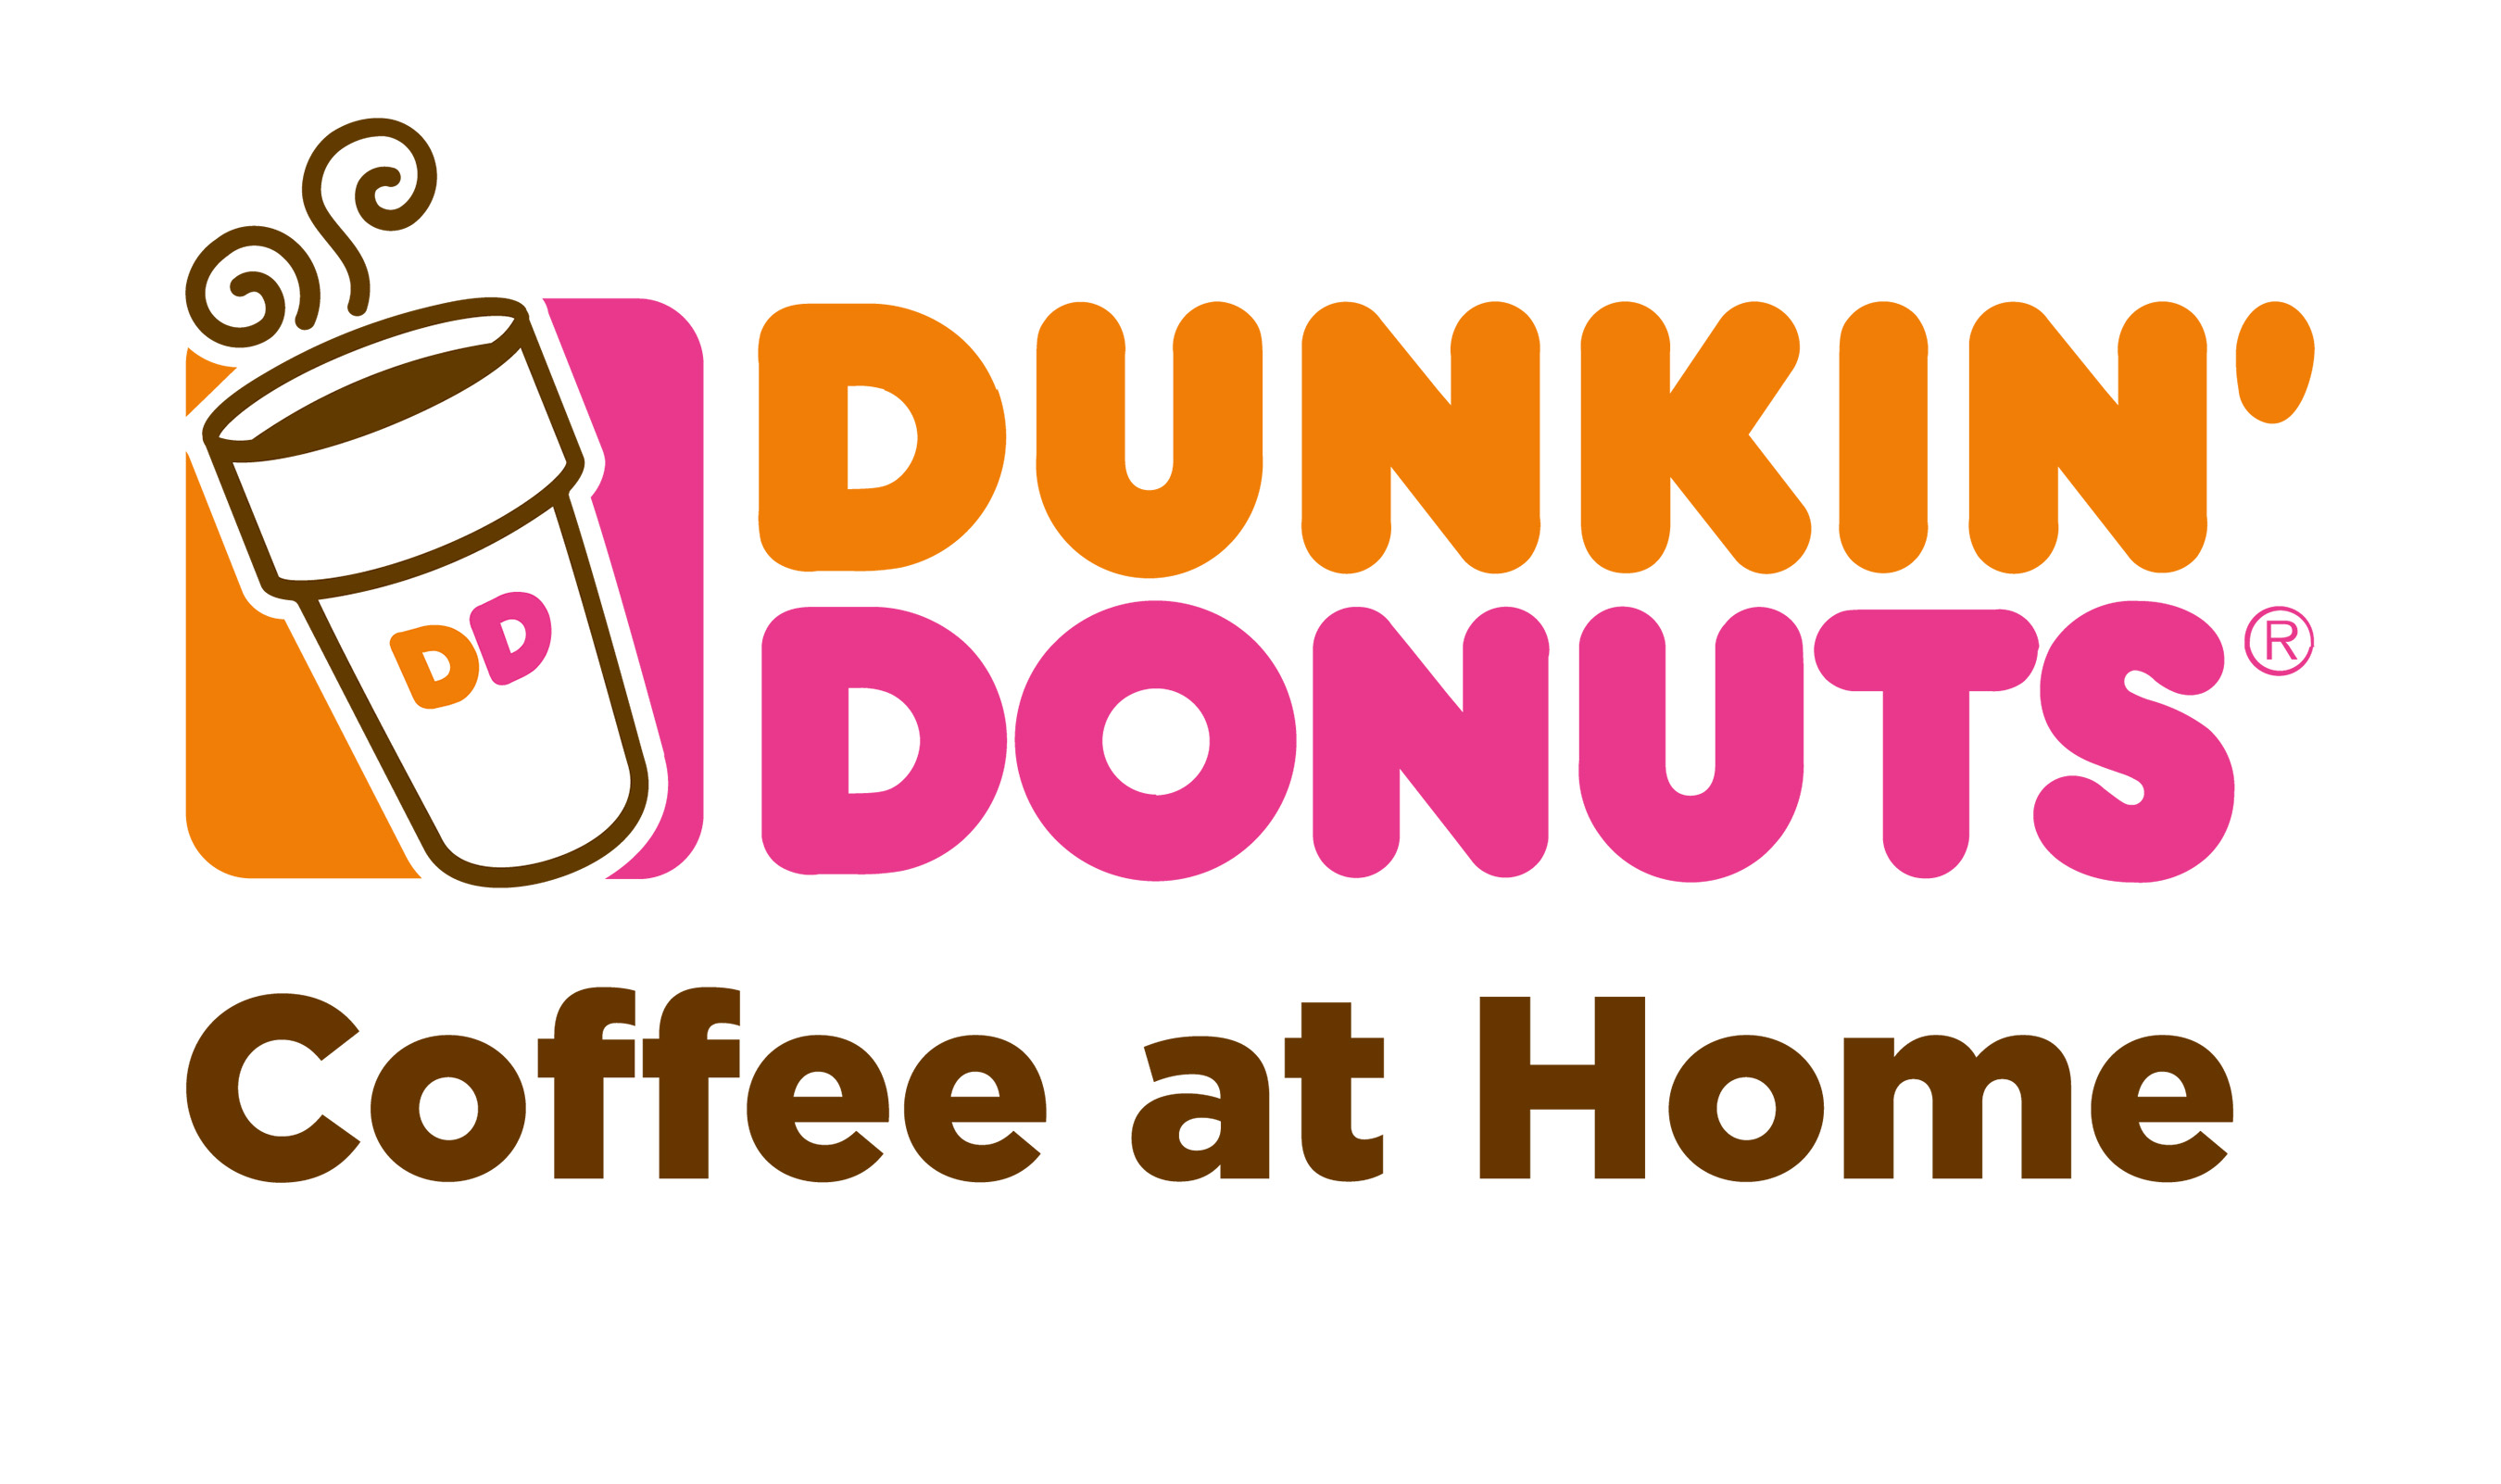 For years America has run on Dunkin'®, and Dunkin' Donuts® Coffee at Home is bringing that slogan to life with the Home That Runs on Dunkin', a tiny home powered by spent coffee grounds.